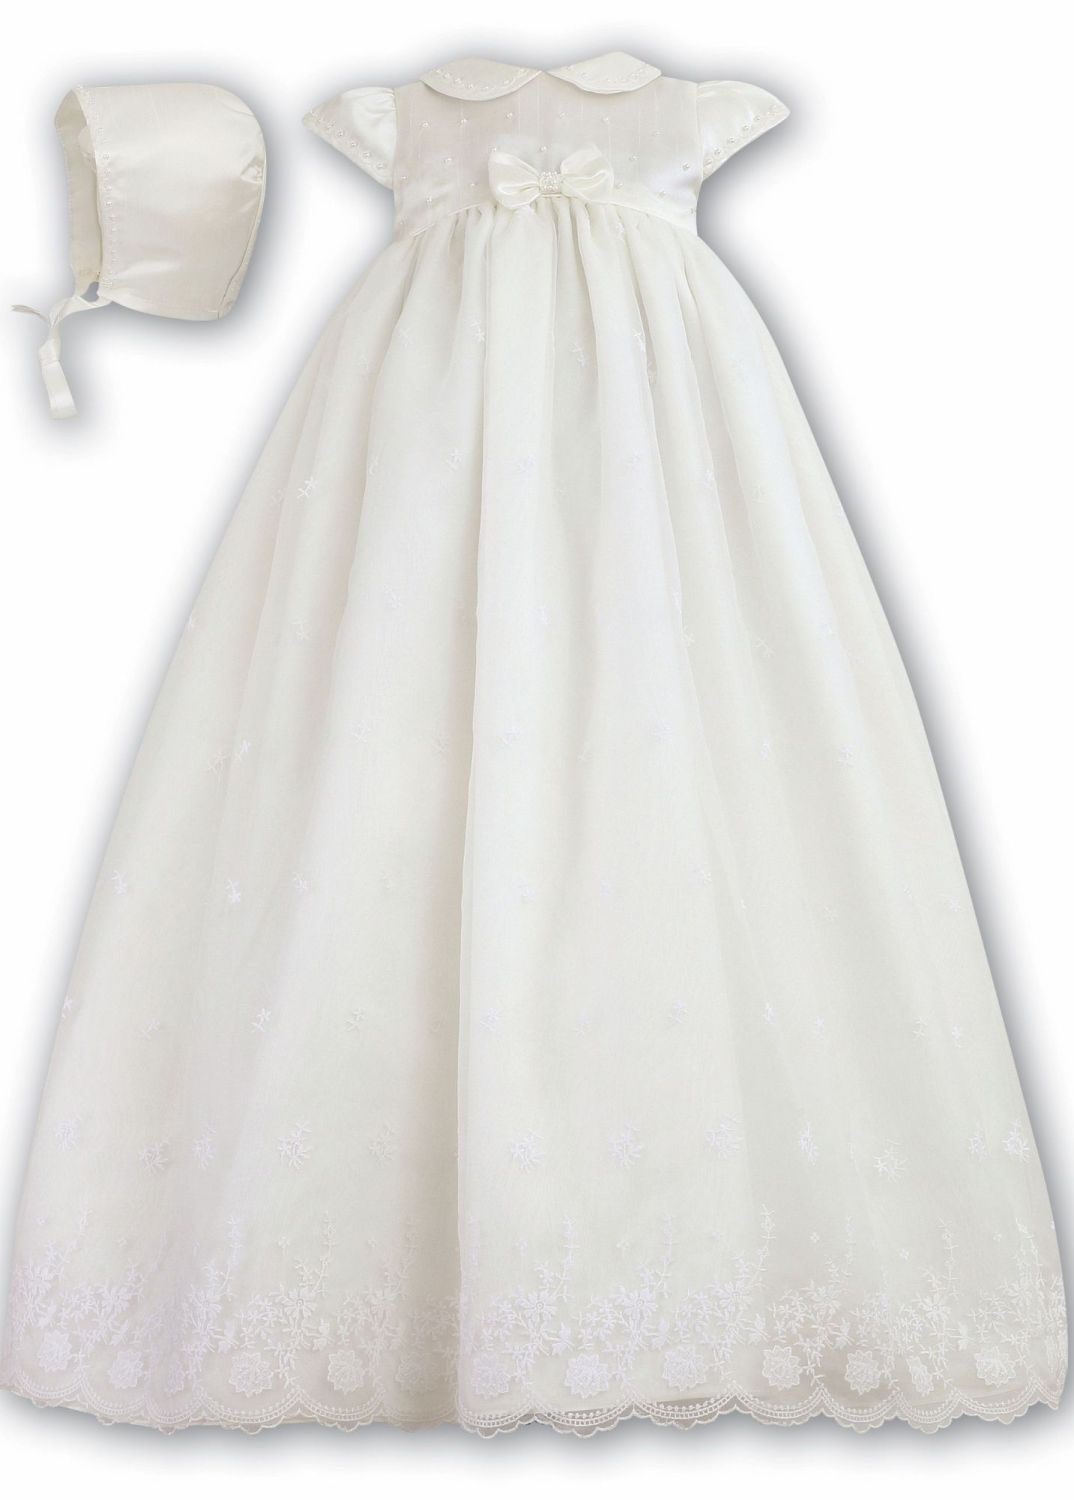 Beautiful baby christening gown by sarah louise made with a satin